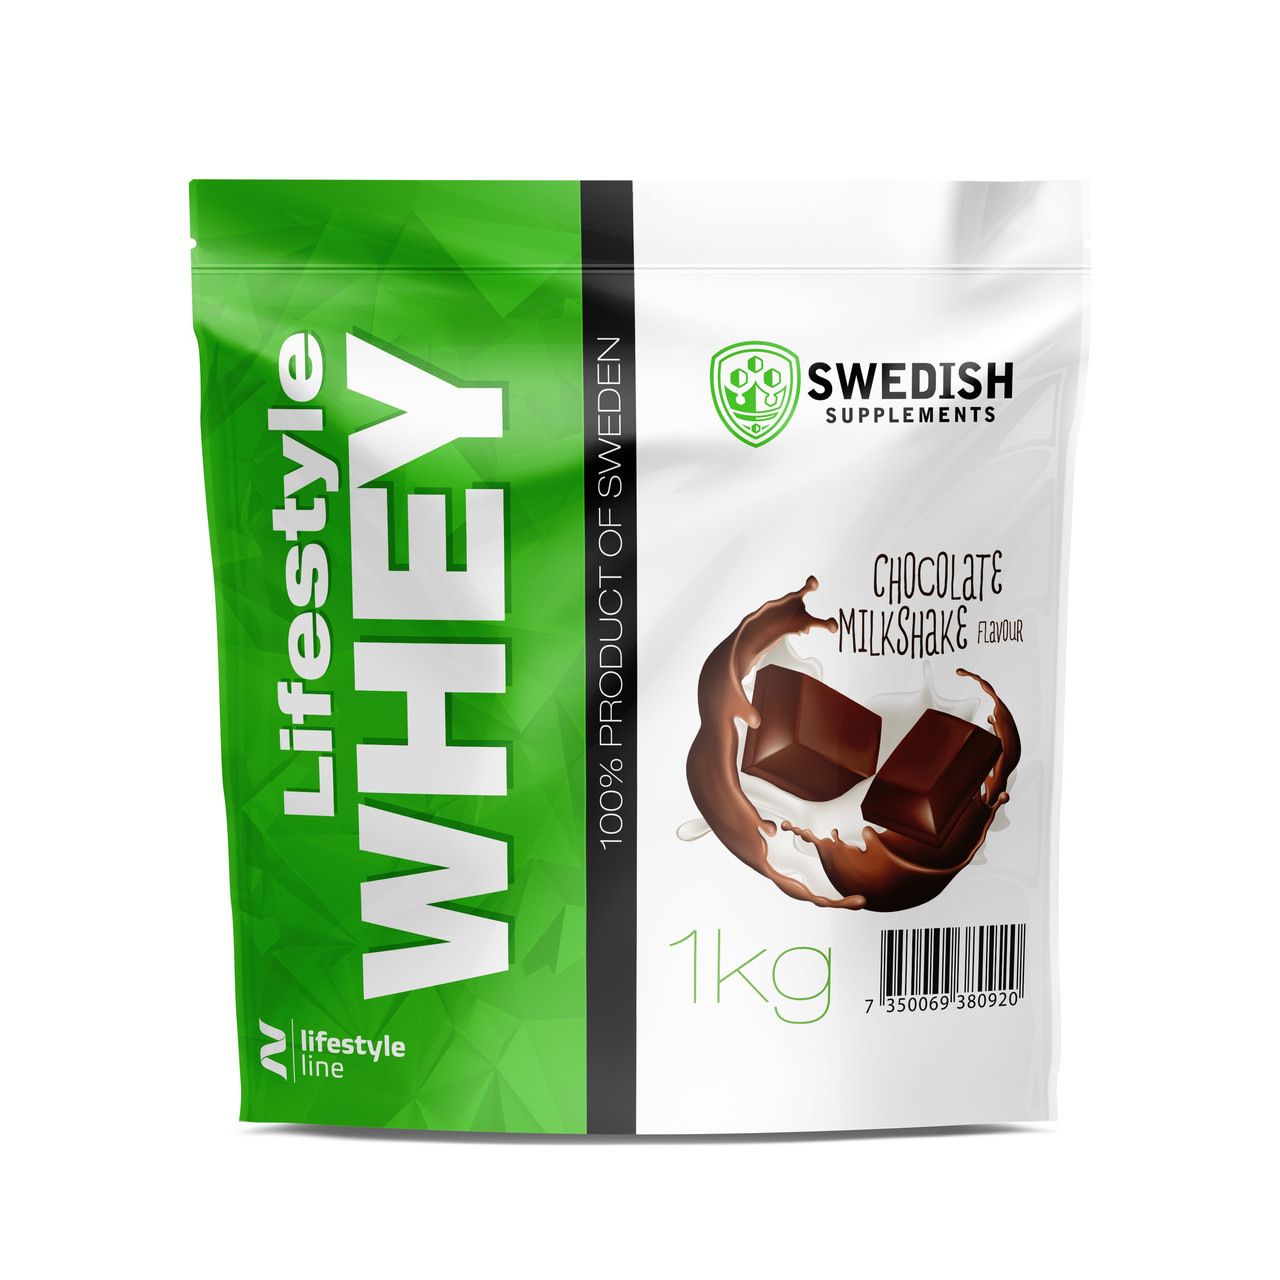 Swedish supplements - LS Whey Protein - 1kg Chocolate Peanut butter